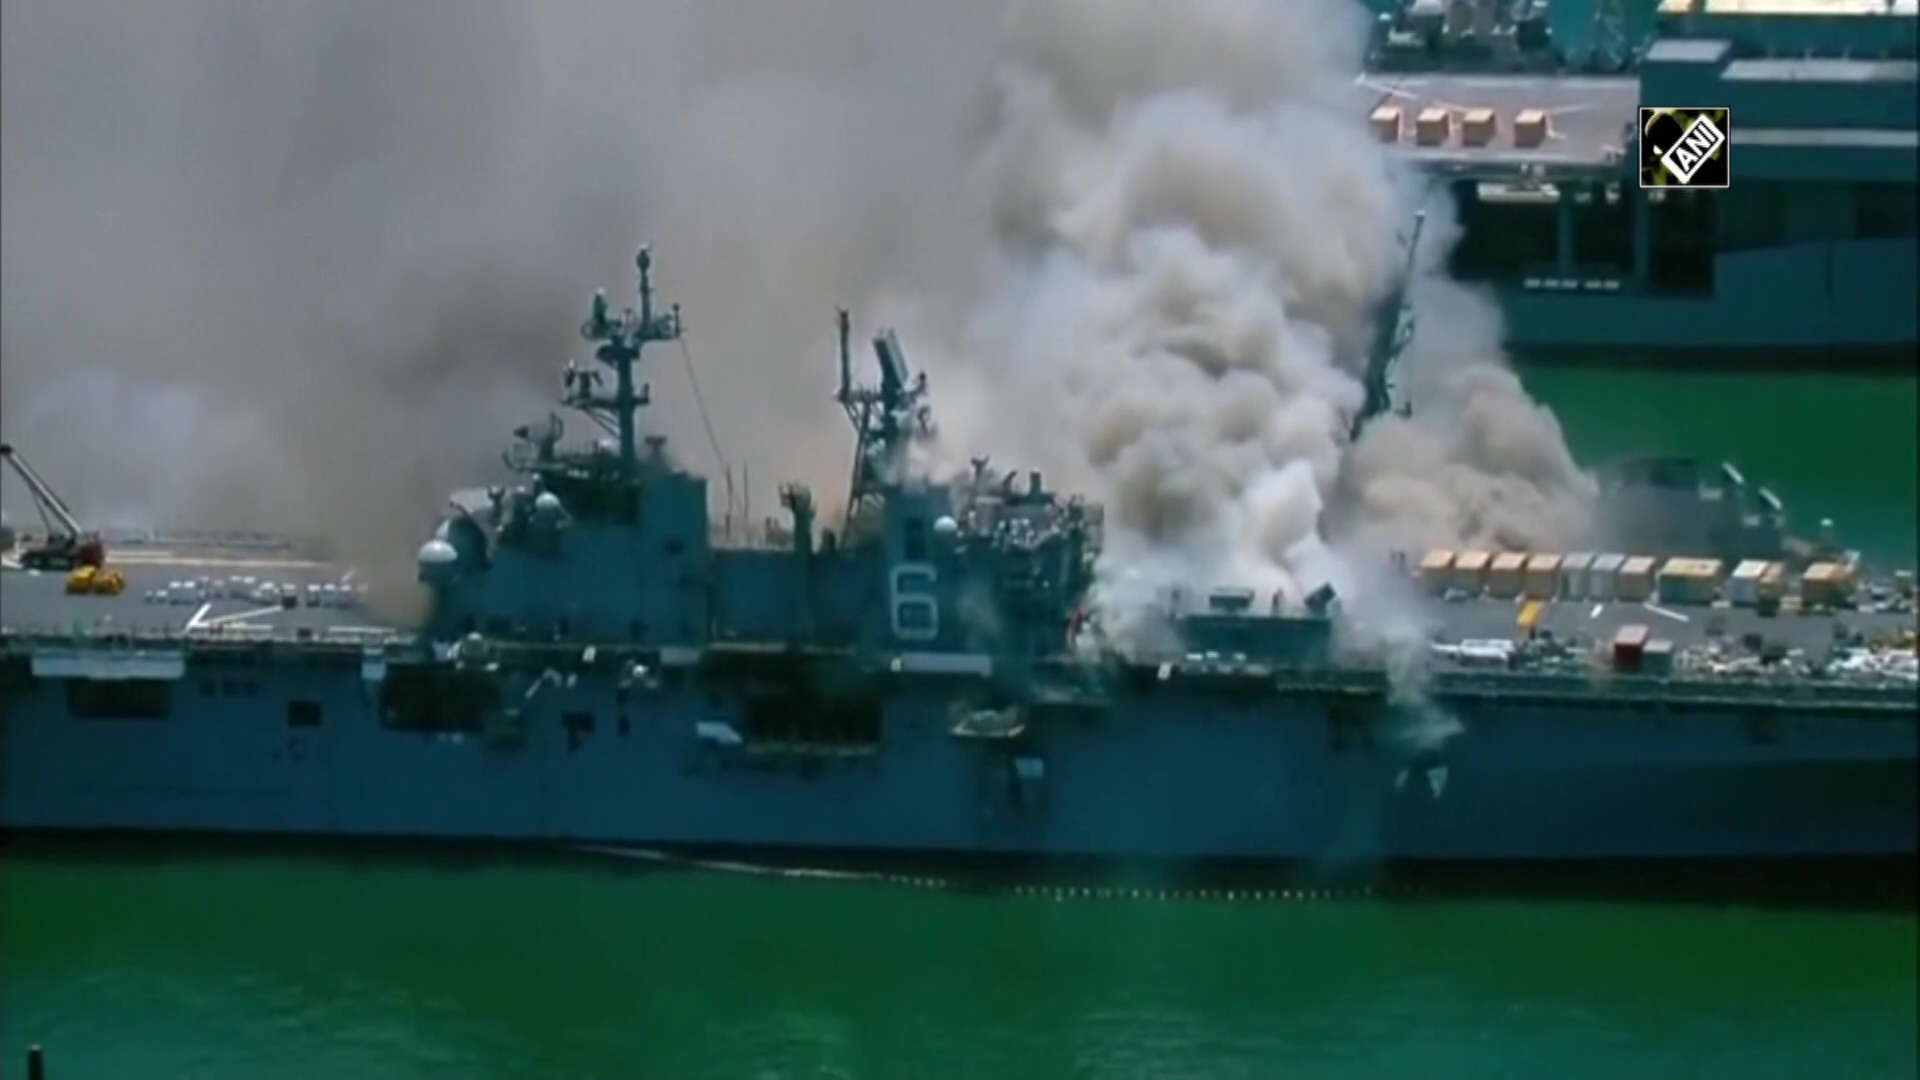 US sailors injured in explosion, fire on naval ship in San Diego